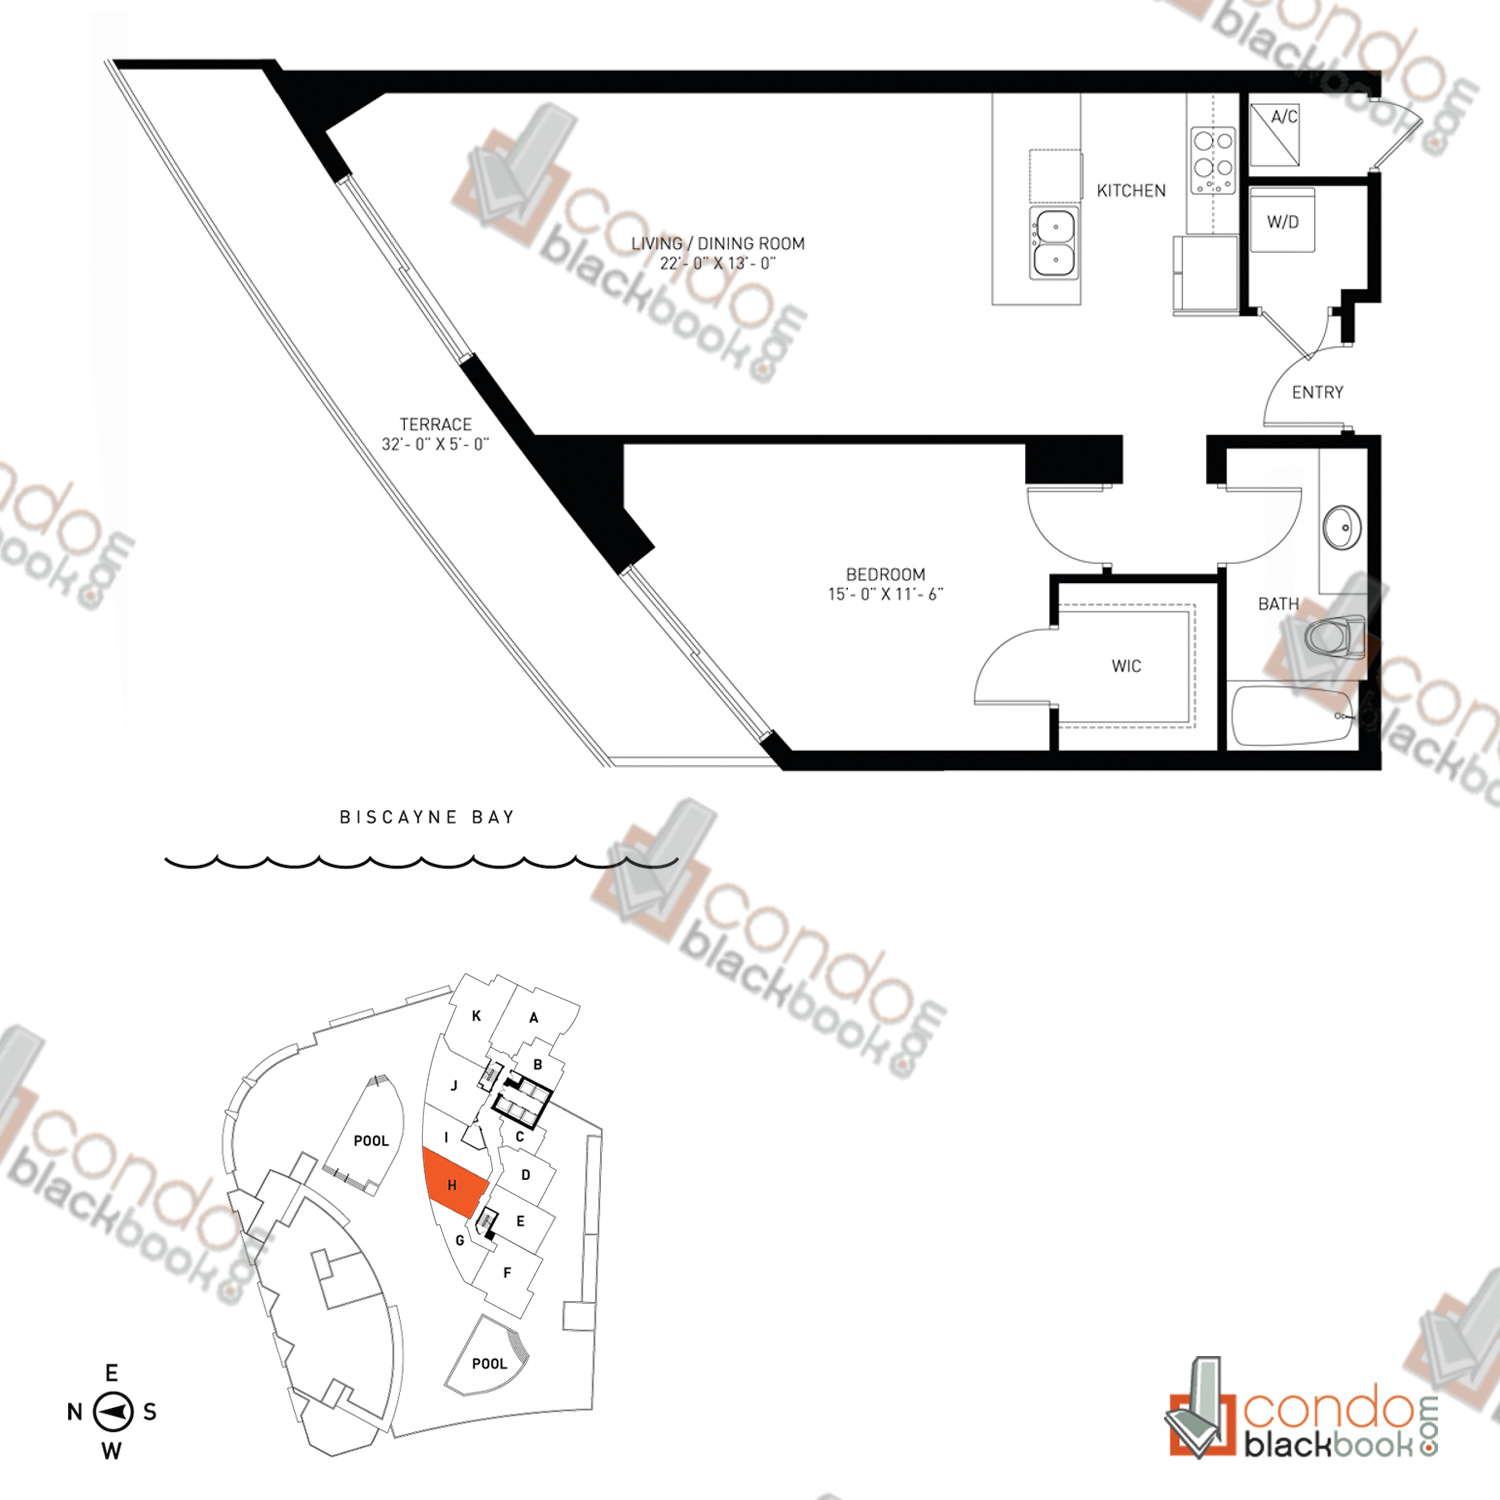 Floor plan for Quantum on the Bay Edgewater Miami, model Residence_H, line 08S, 1/1 bedrooms, 837 sq ft